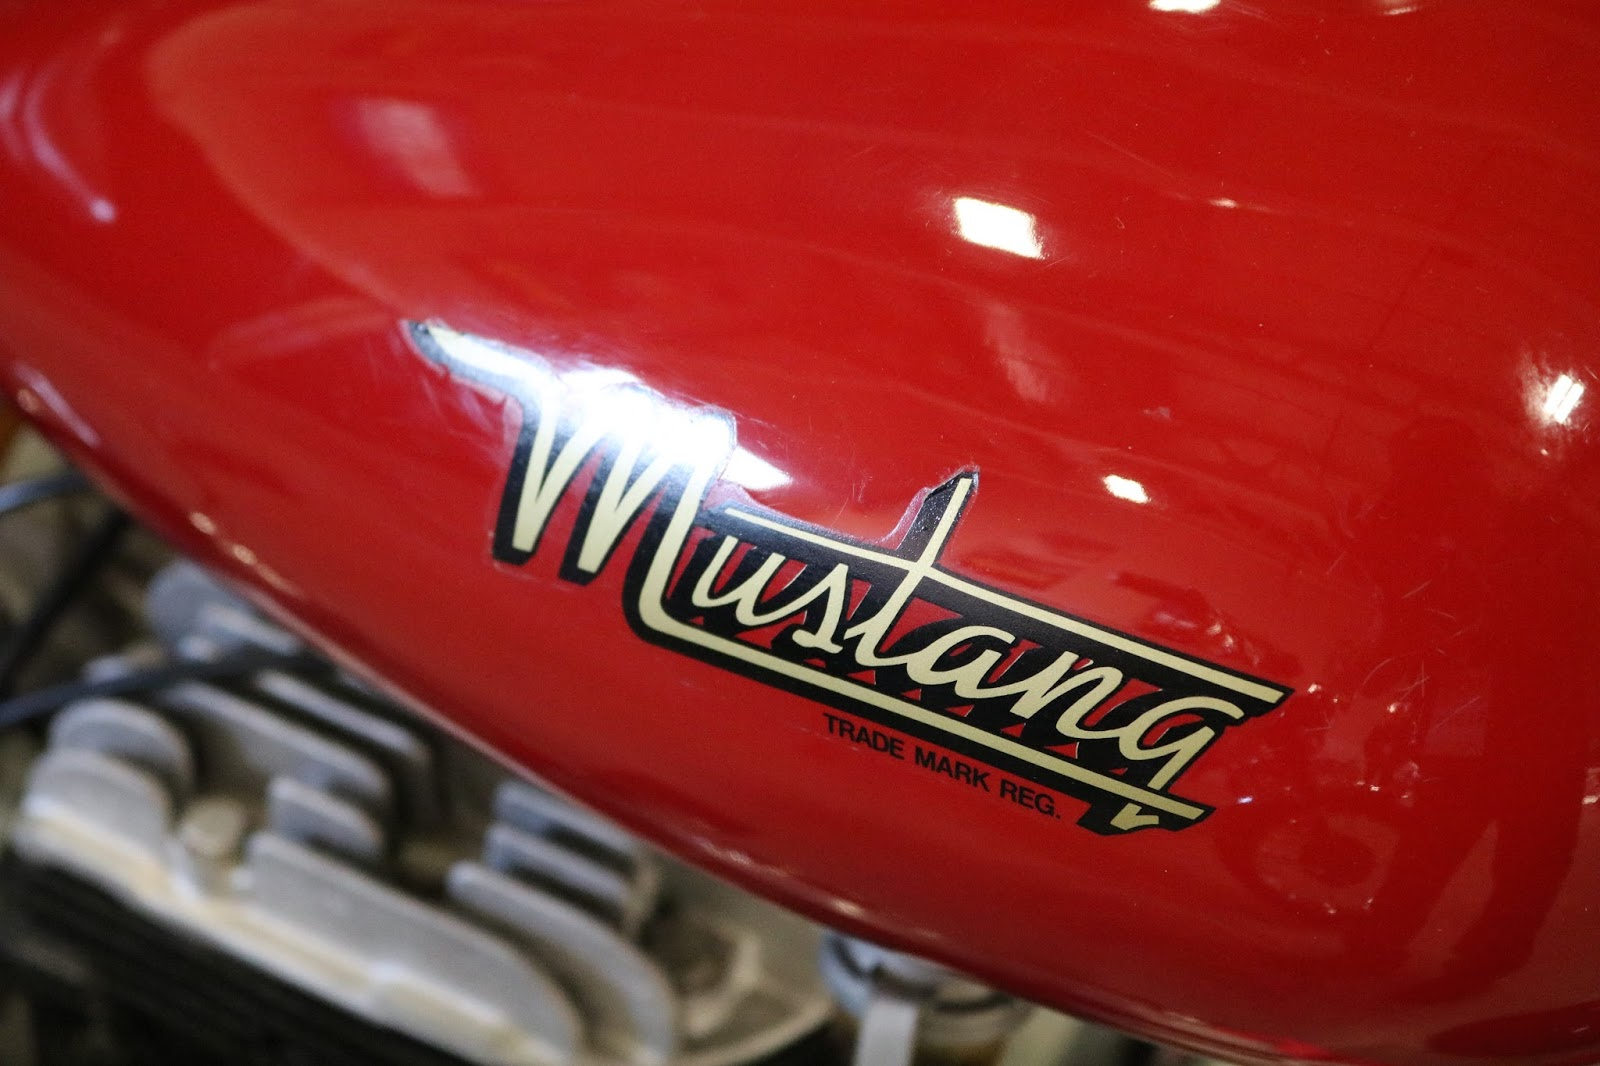 Oldmotodude 1949 Mustang Model 2 Sold For 9 000 At The